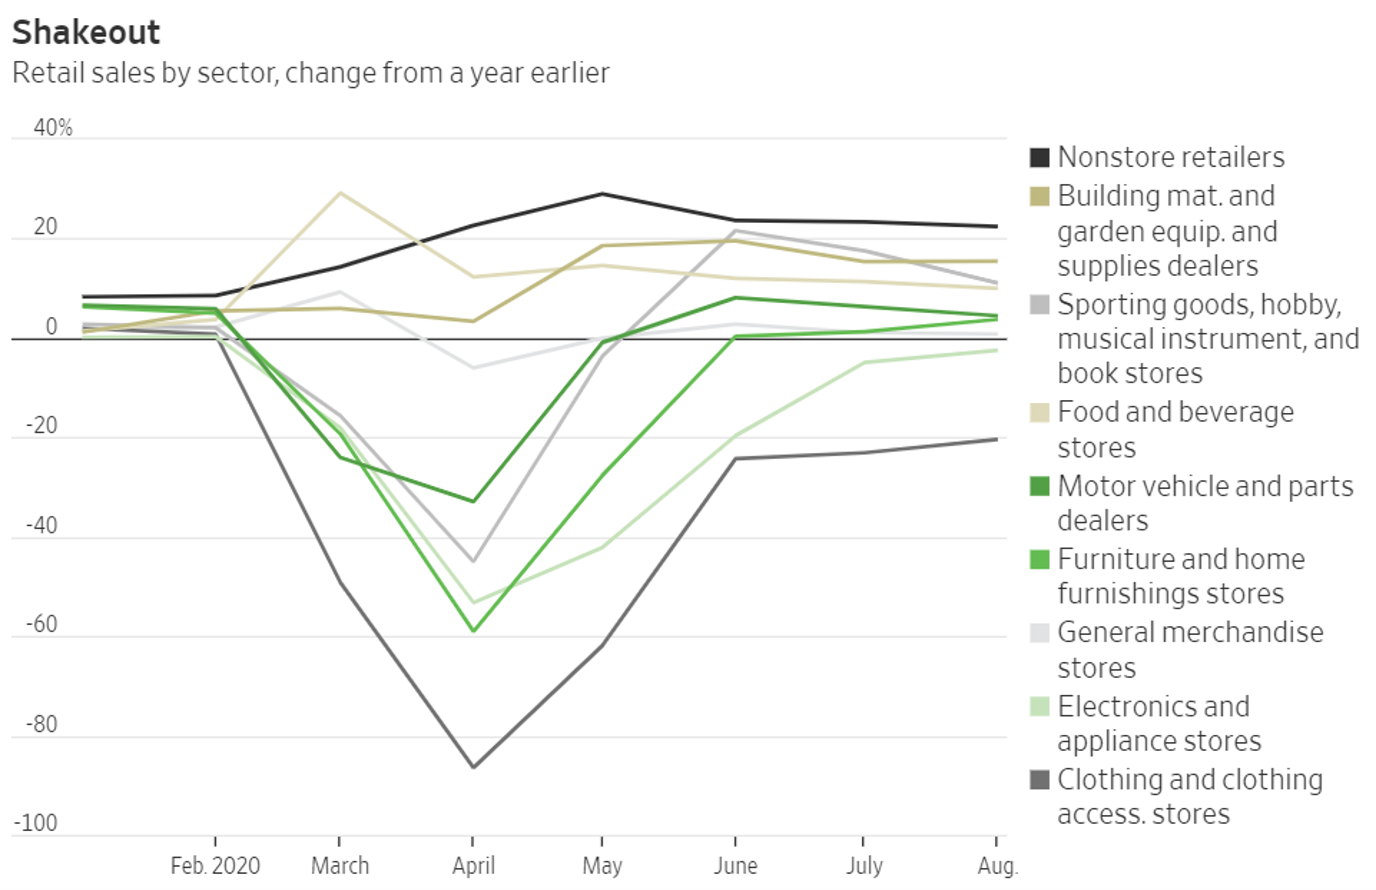 Chart showing 2020 retail sales trends by sector, due to Covid